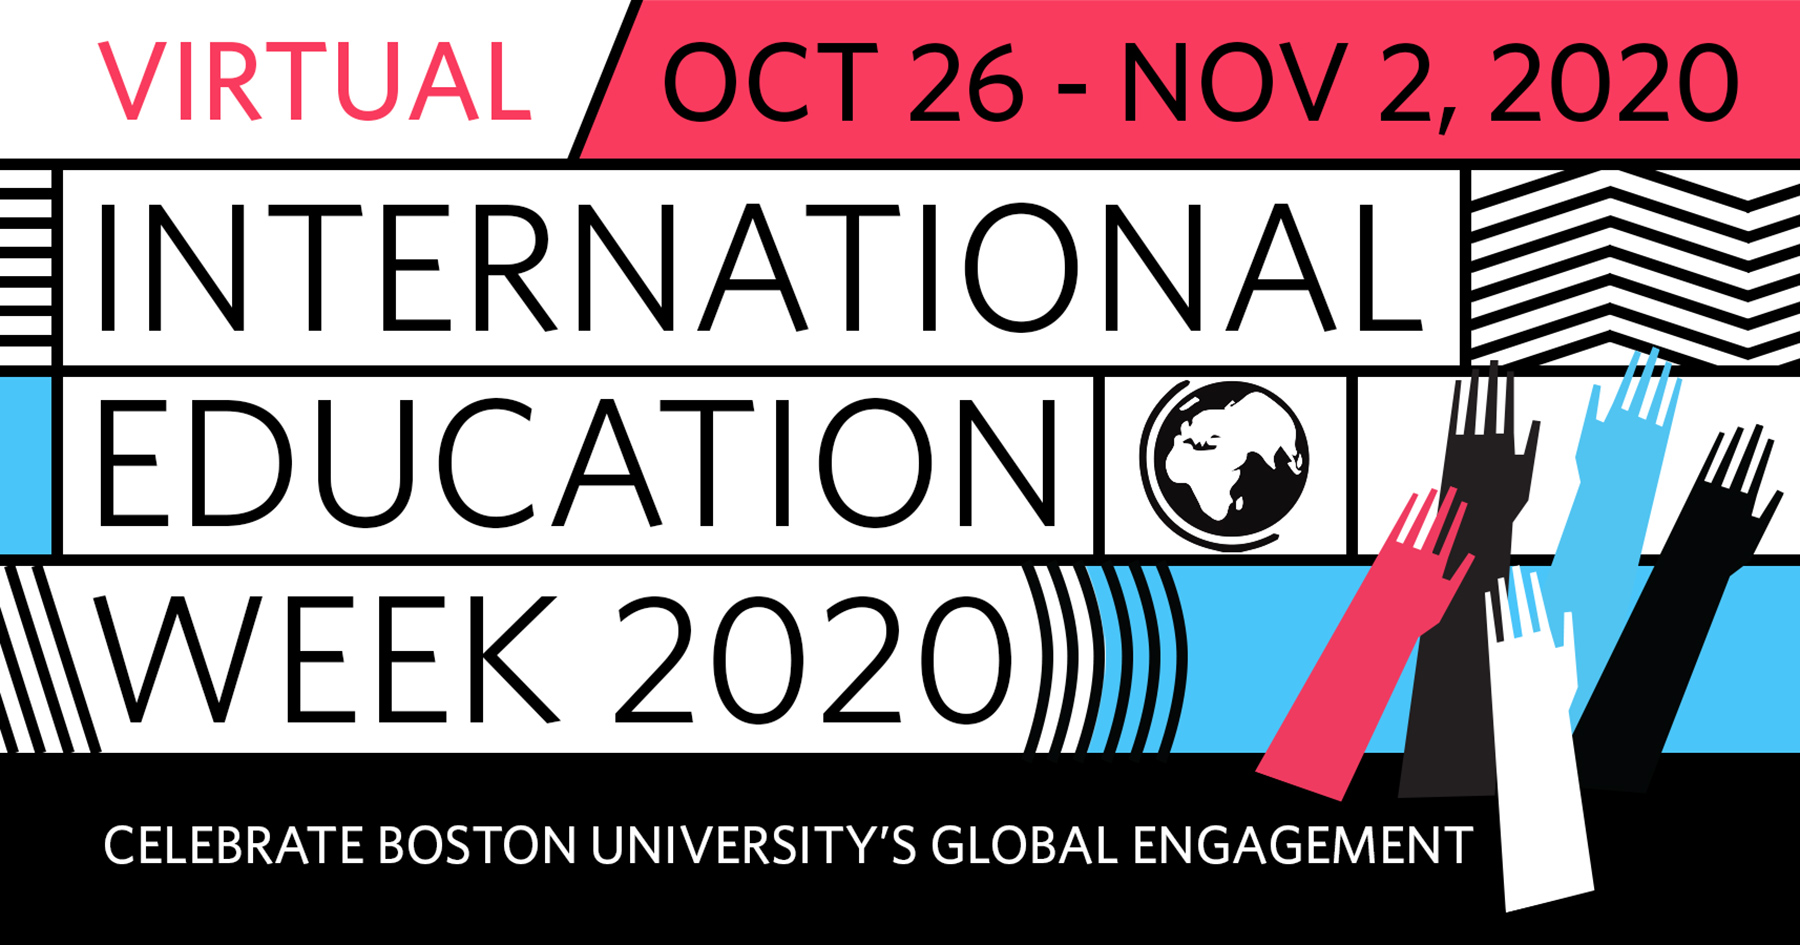 "Illustration of the logo for International Education Week 2020 made from black, white, pink, and light blue stripes, waves, and hands. The text reads ""Virtual: October 26 - Nov 2, 2020. International Education Week 2020. Celebrate Boston University's Global Engagement"""